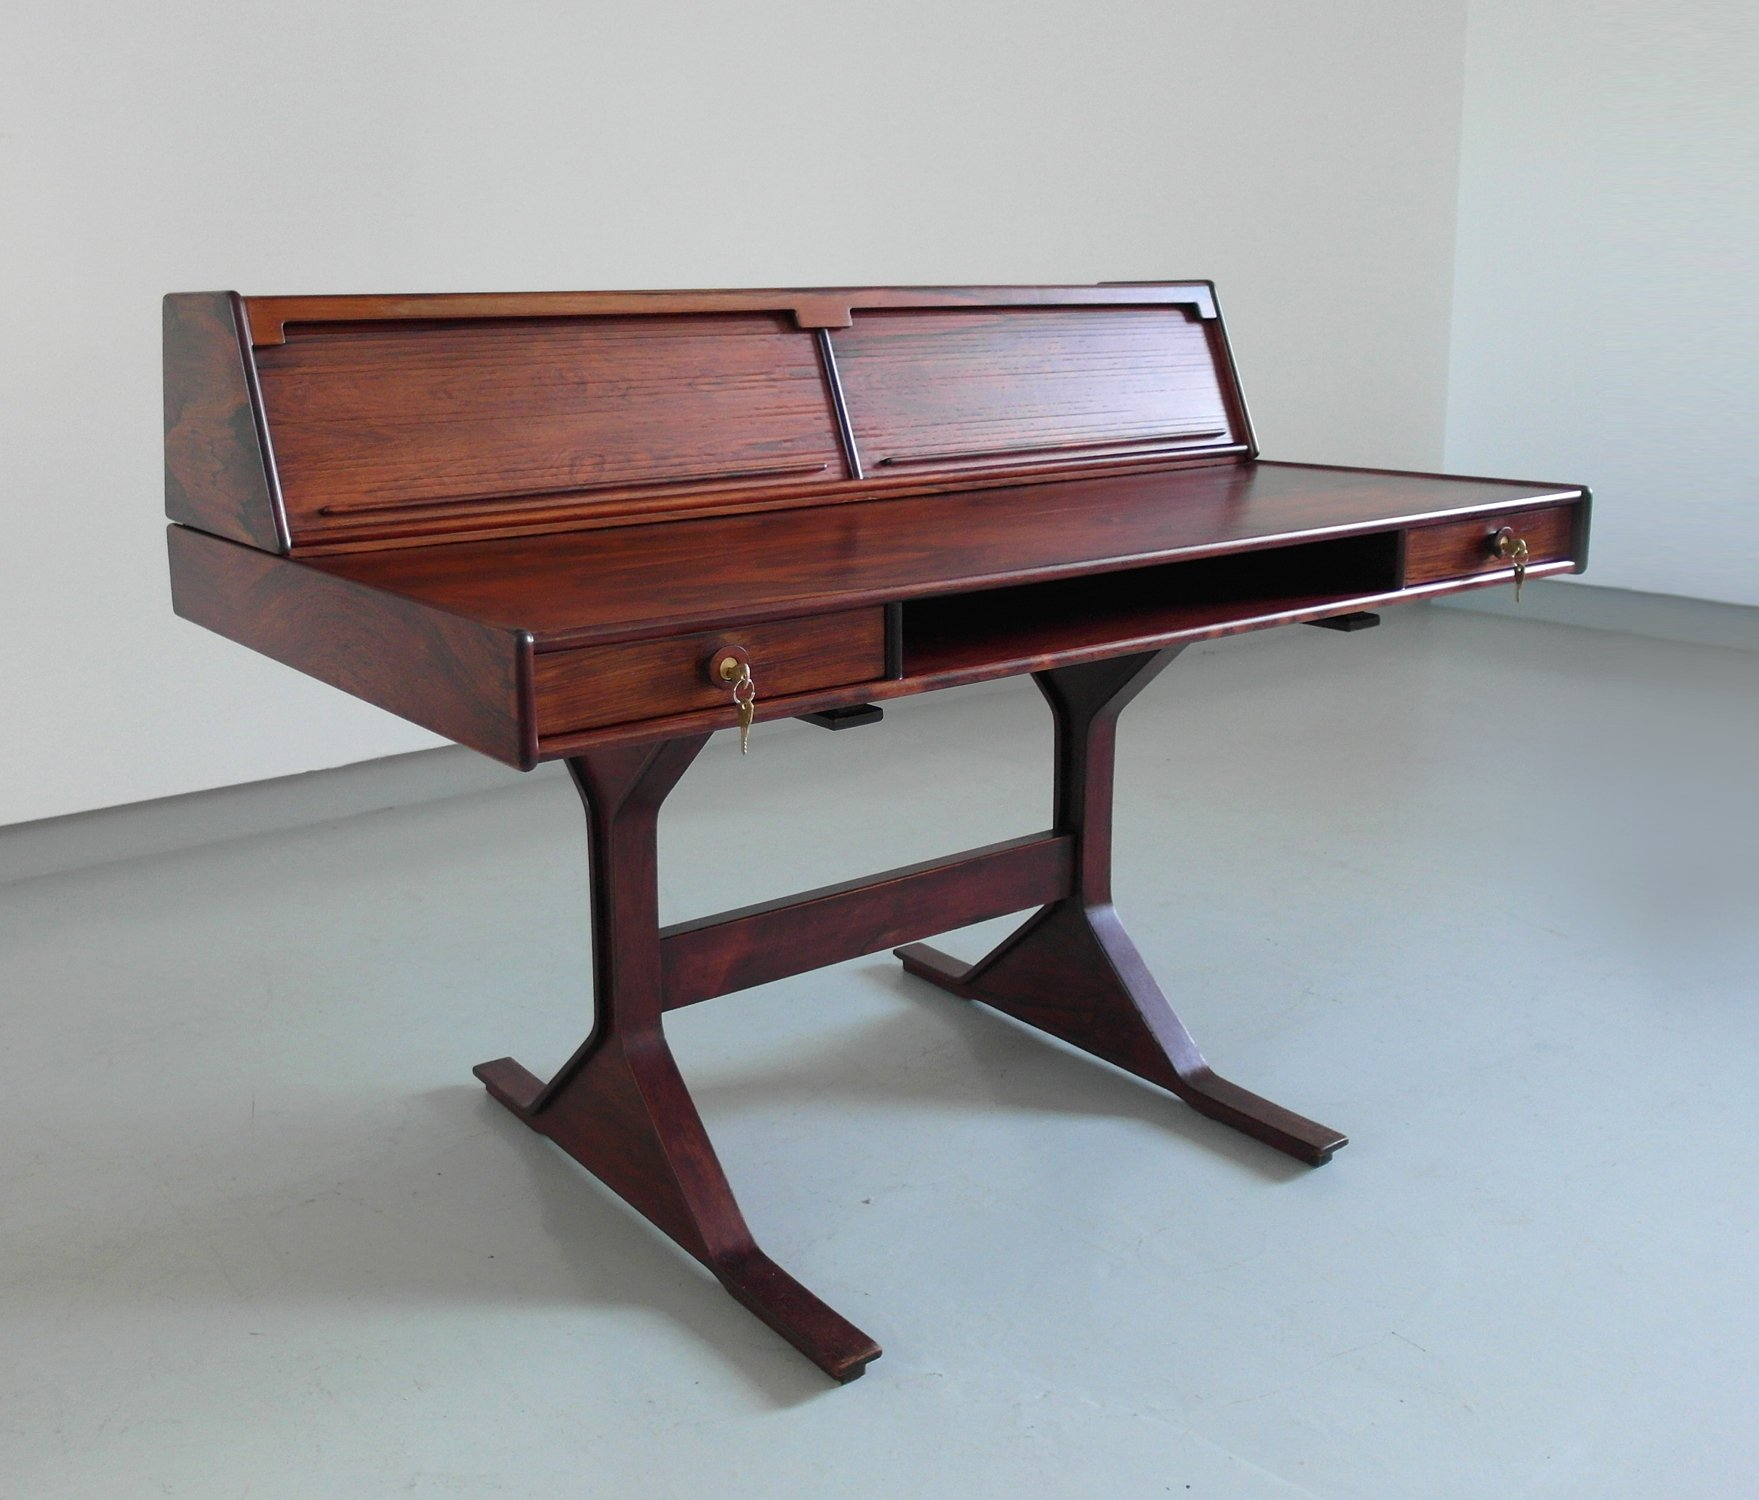 Image of: Sophisticated Mid Century Modern Rosewood Desk By Gianfranco Frattini 103642